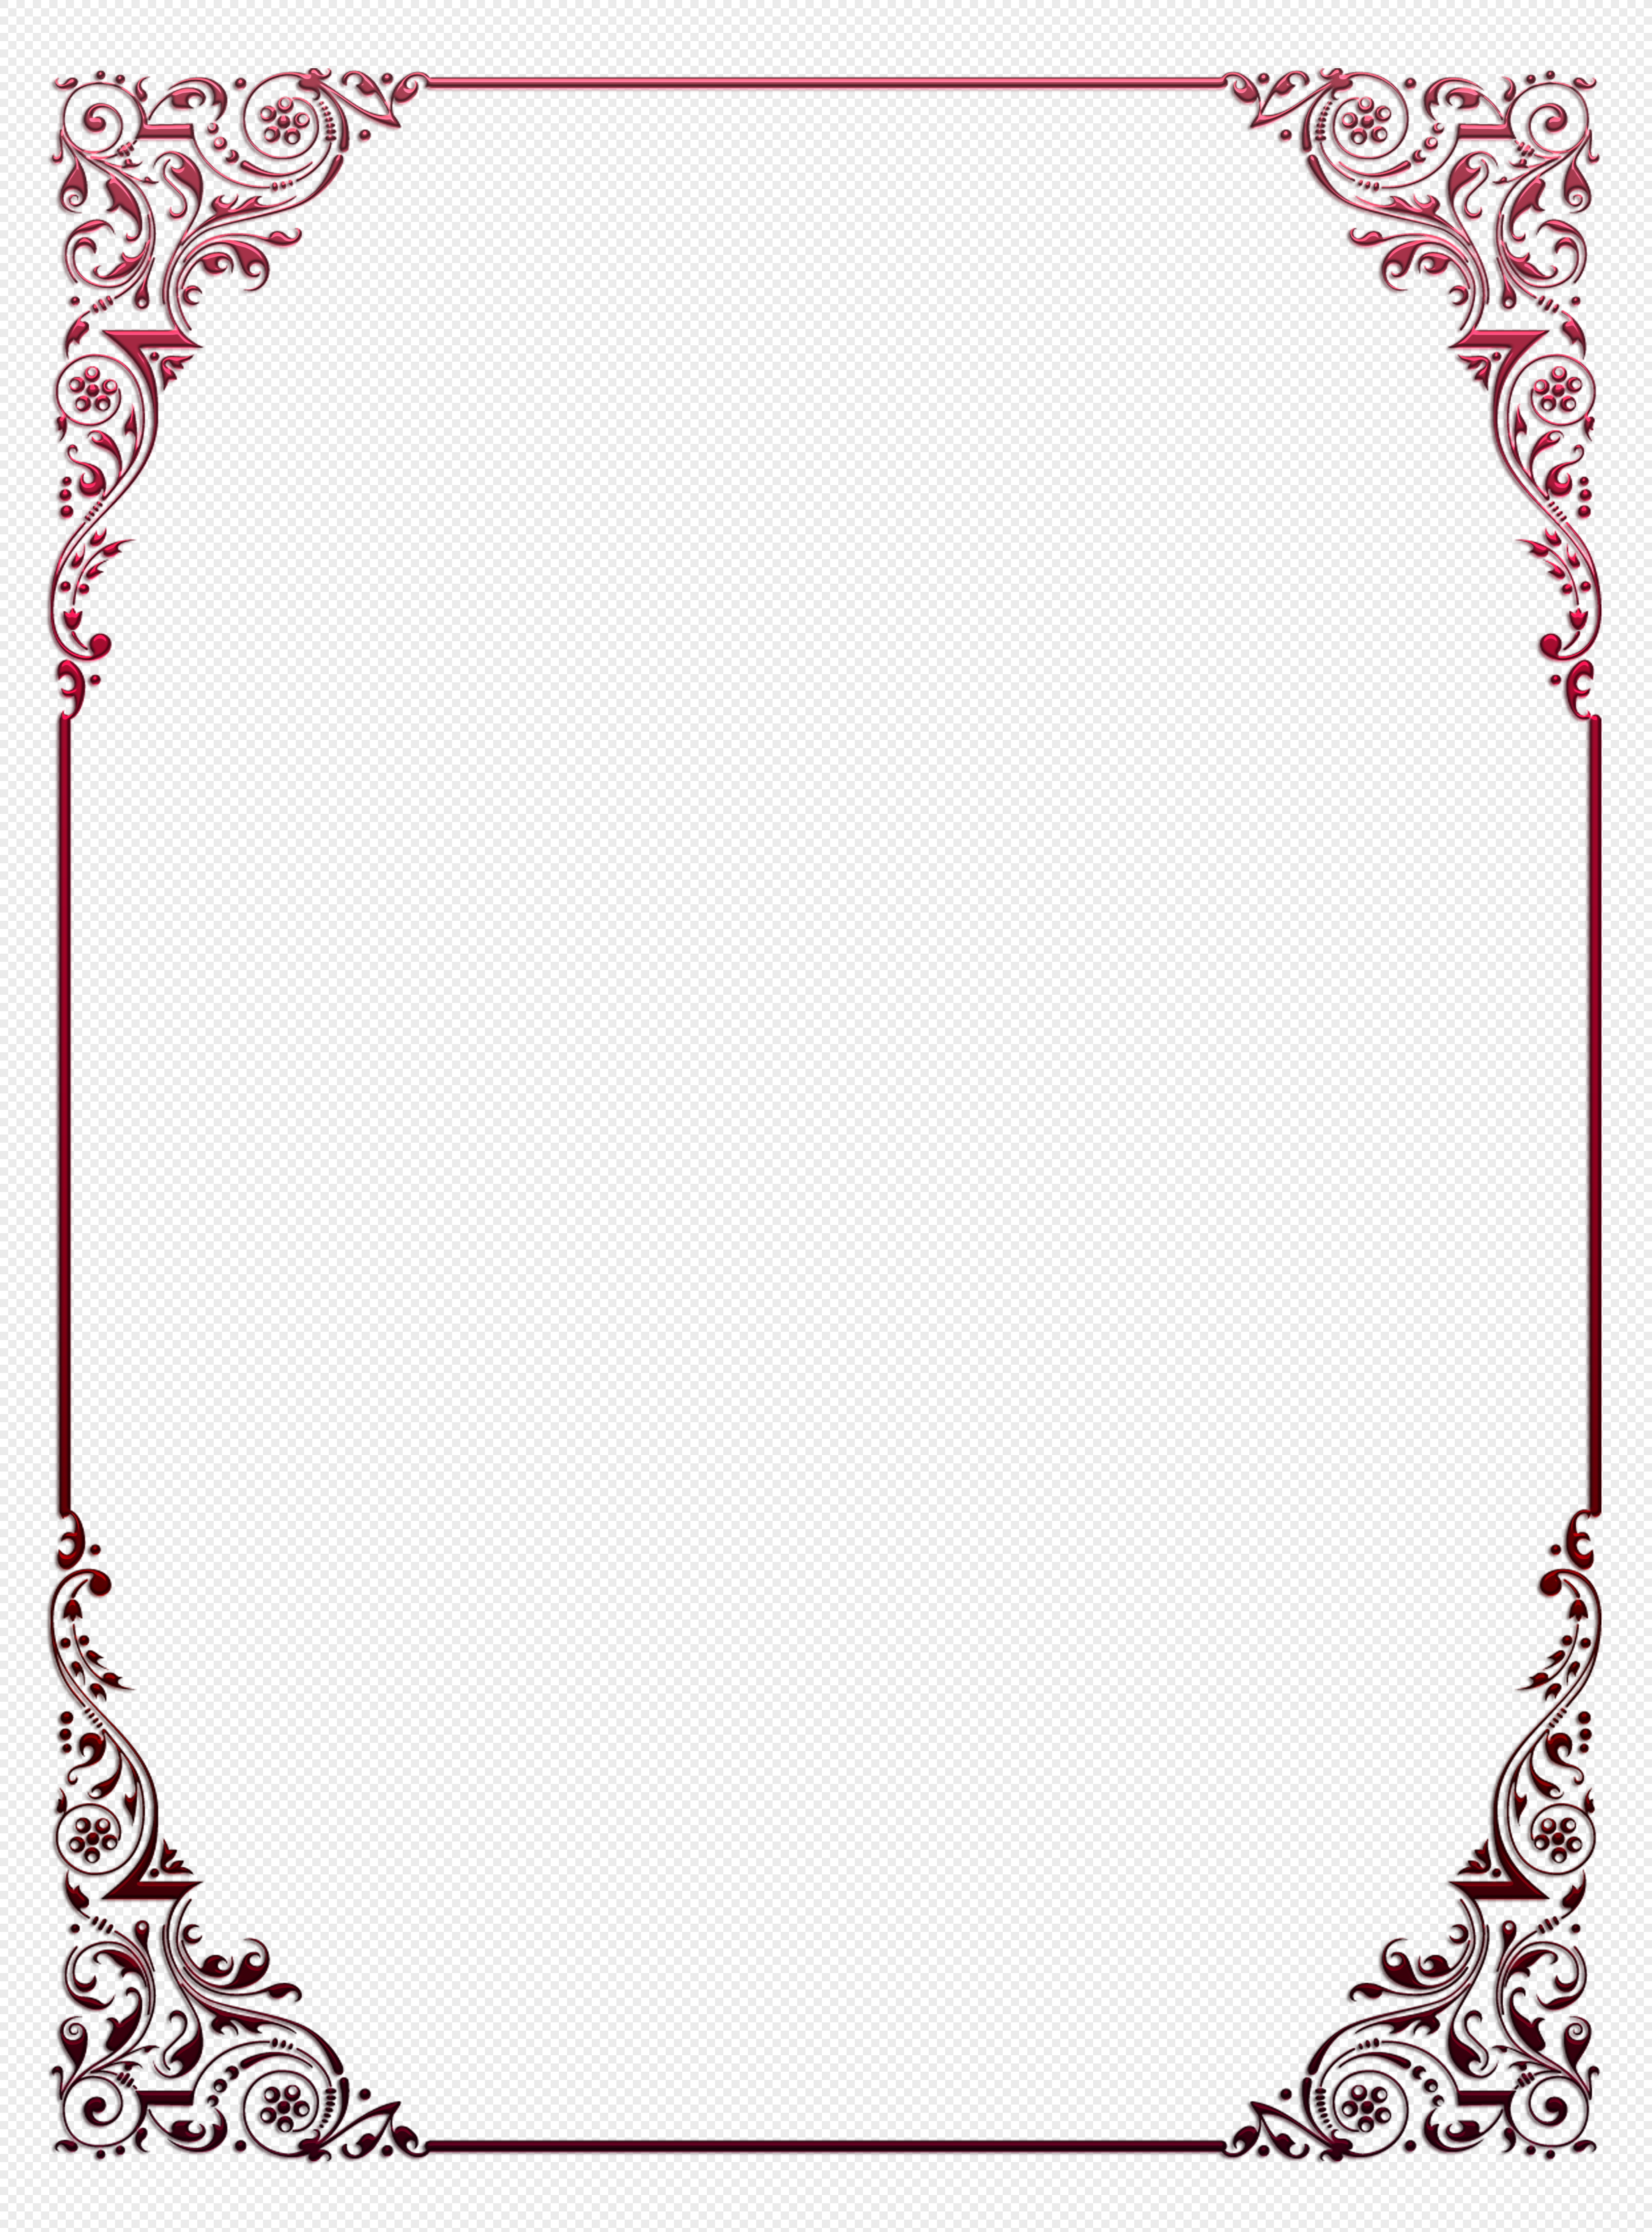 Outline Background 109 images in Collection Page 3 4020x5430